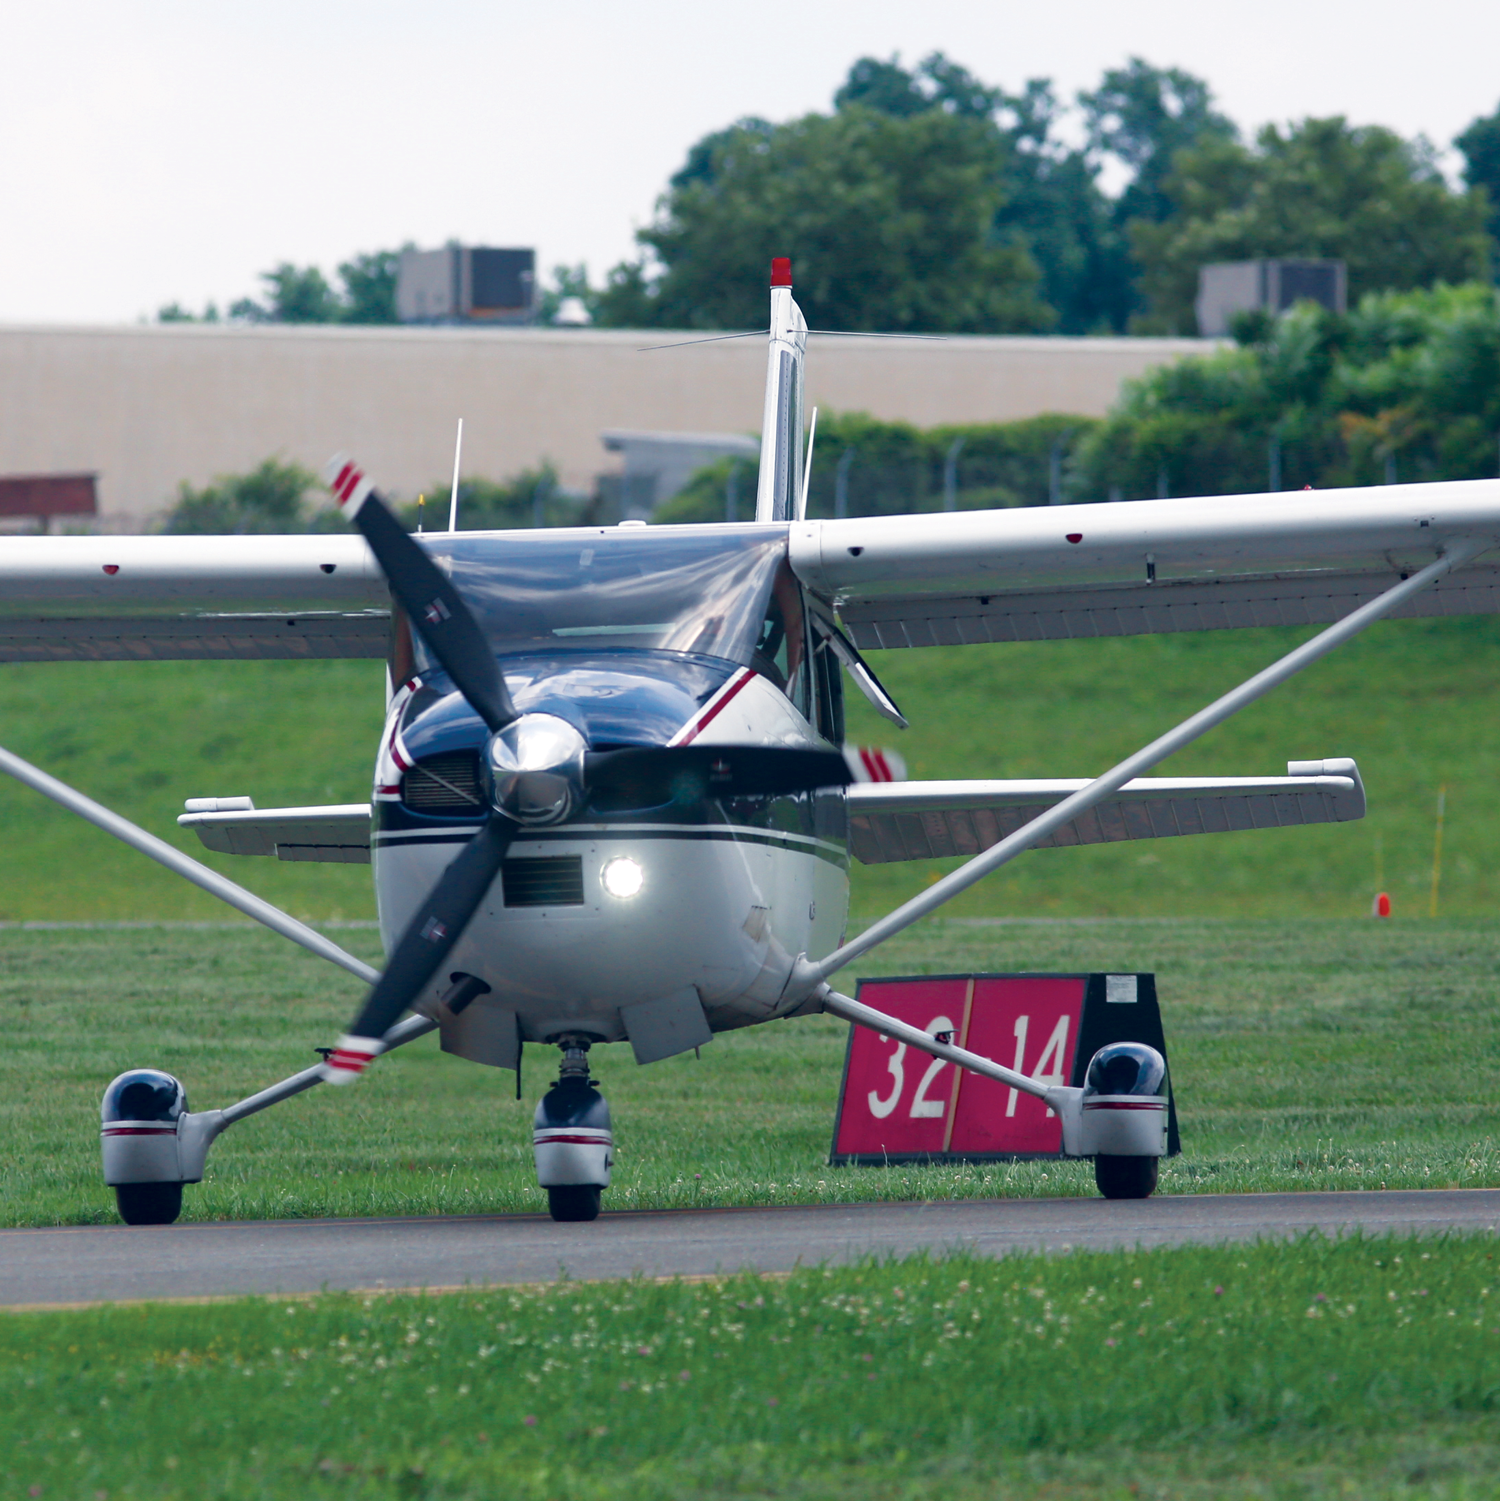 General Aviation plane on a runway